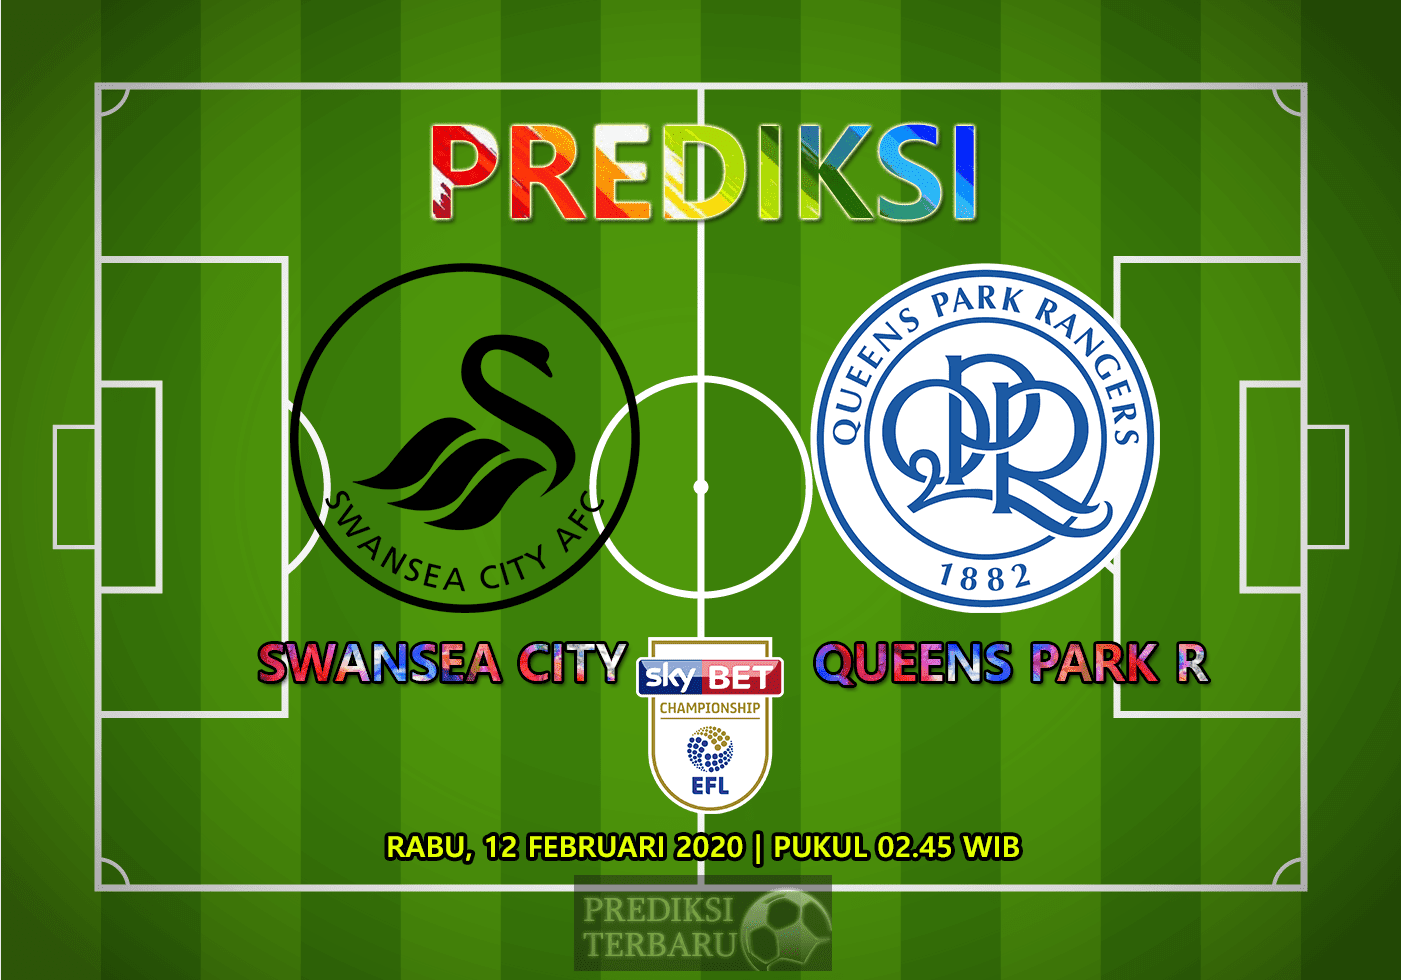 Prediksi Swansea City Vs Queens Park Rangers 12 Februari